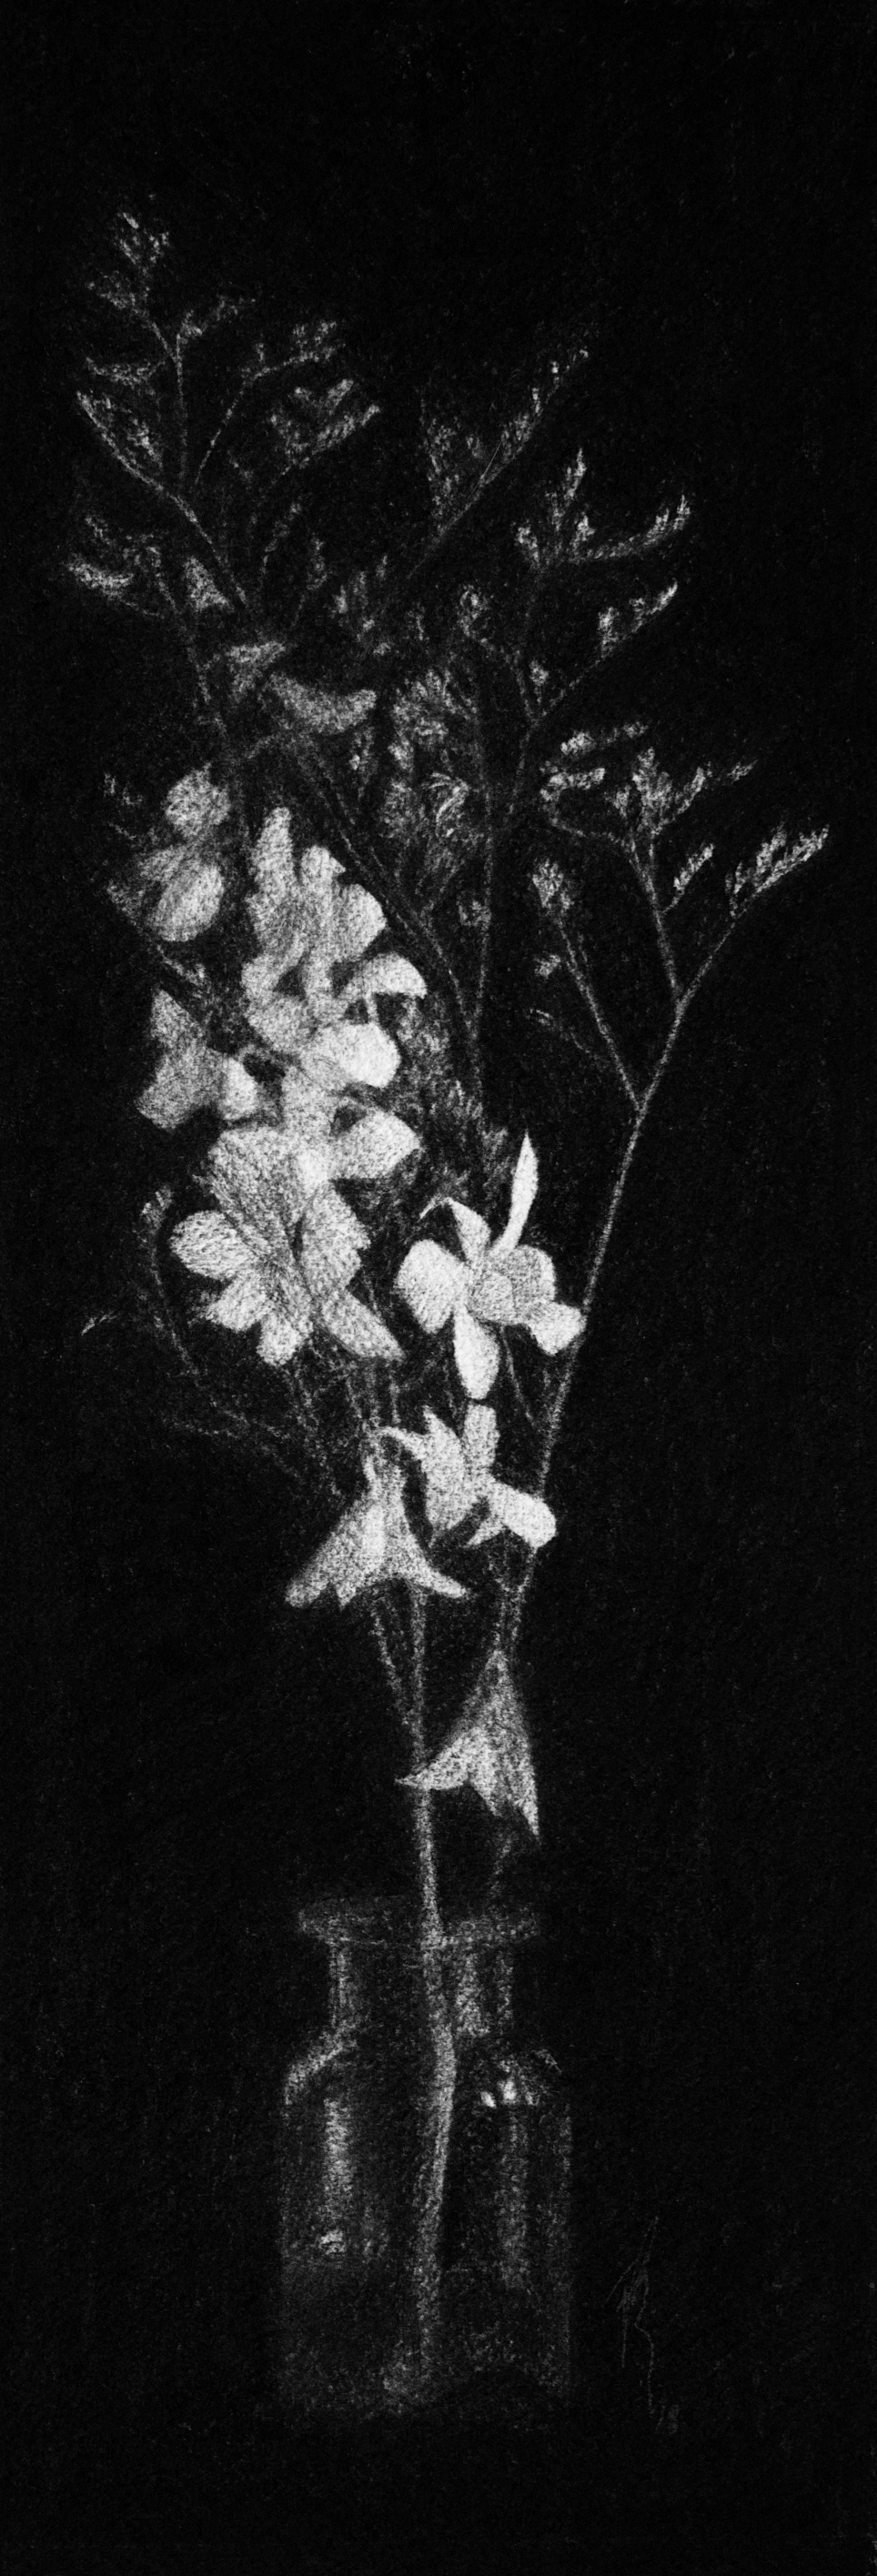 "Orchids I    Charcoal on paper 2018 37cm x 12cm  Sold. Exhibited at Art Porters Gallery ""Flower Flights"" solo exhibition.  past series:  Flower Flights"